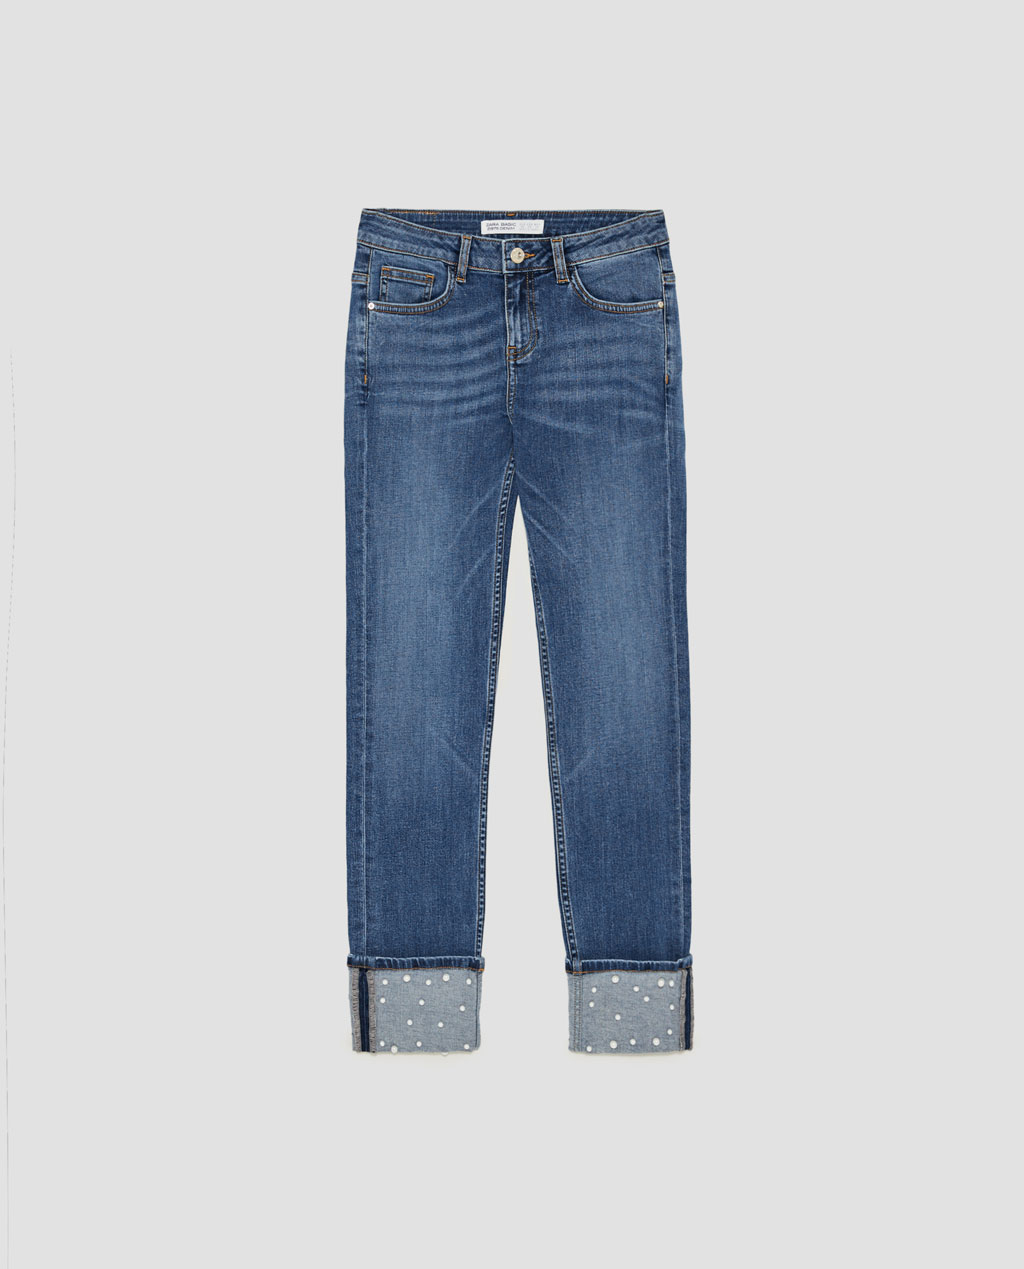 Zara mid-rise jean with pearl beads